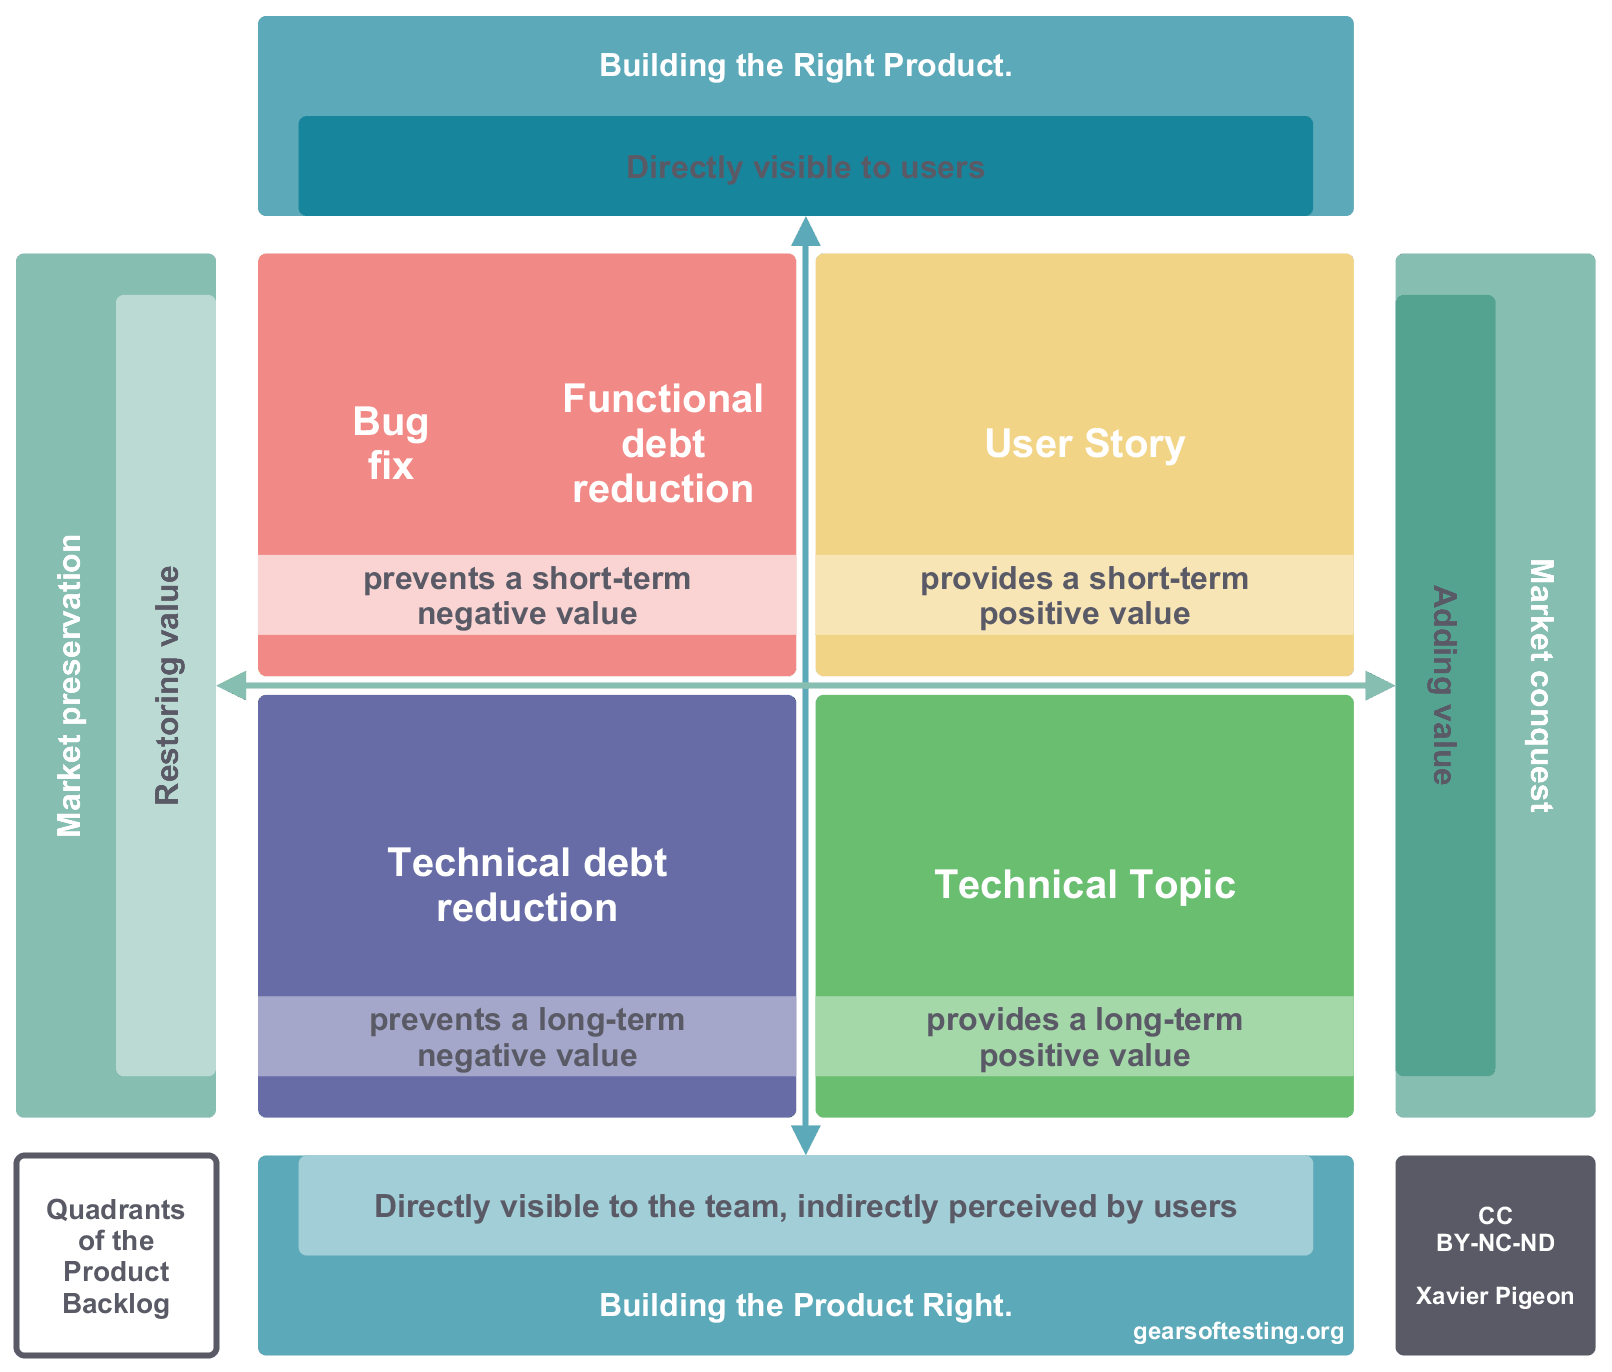 Quadrants of the Product Backlog